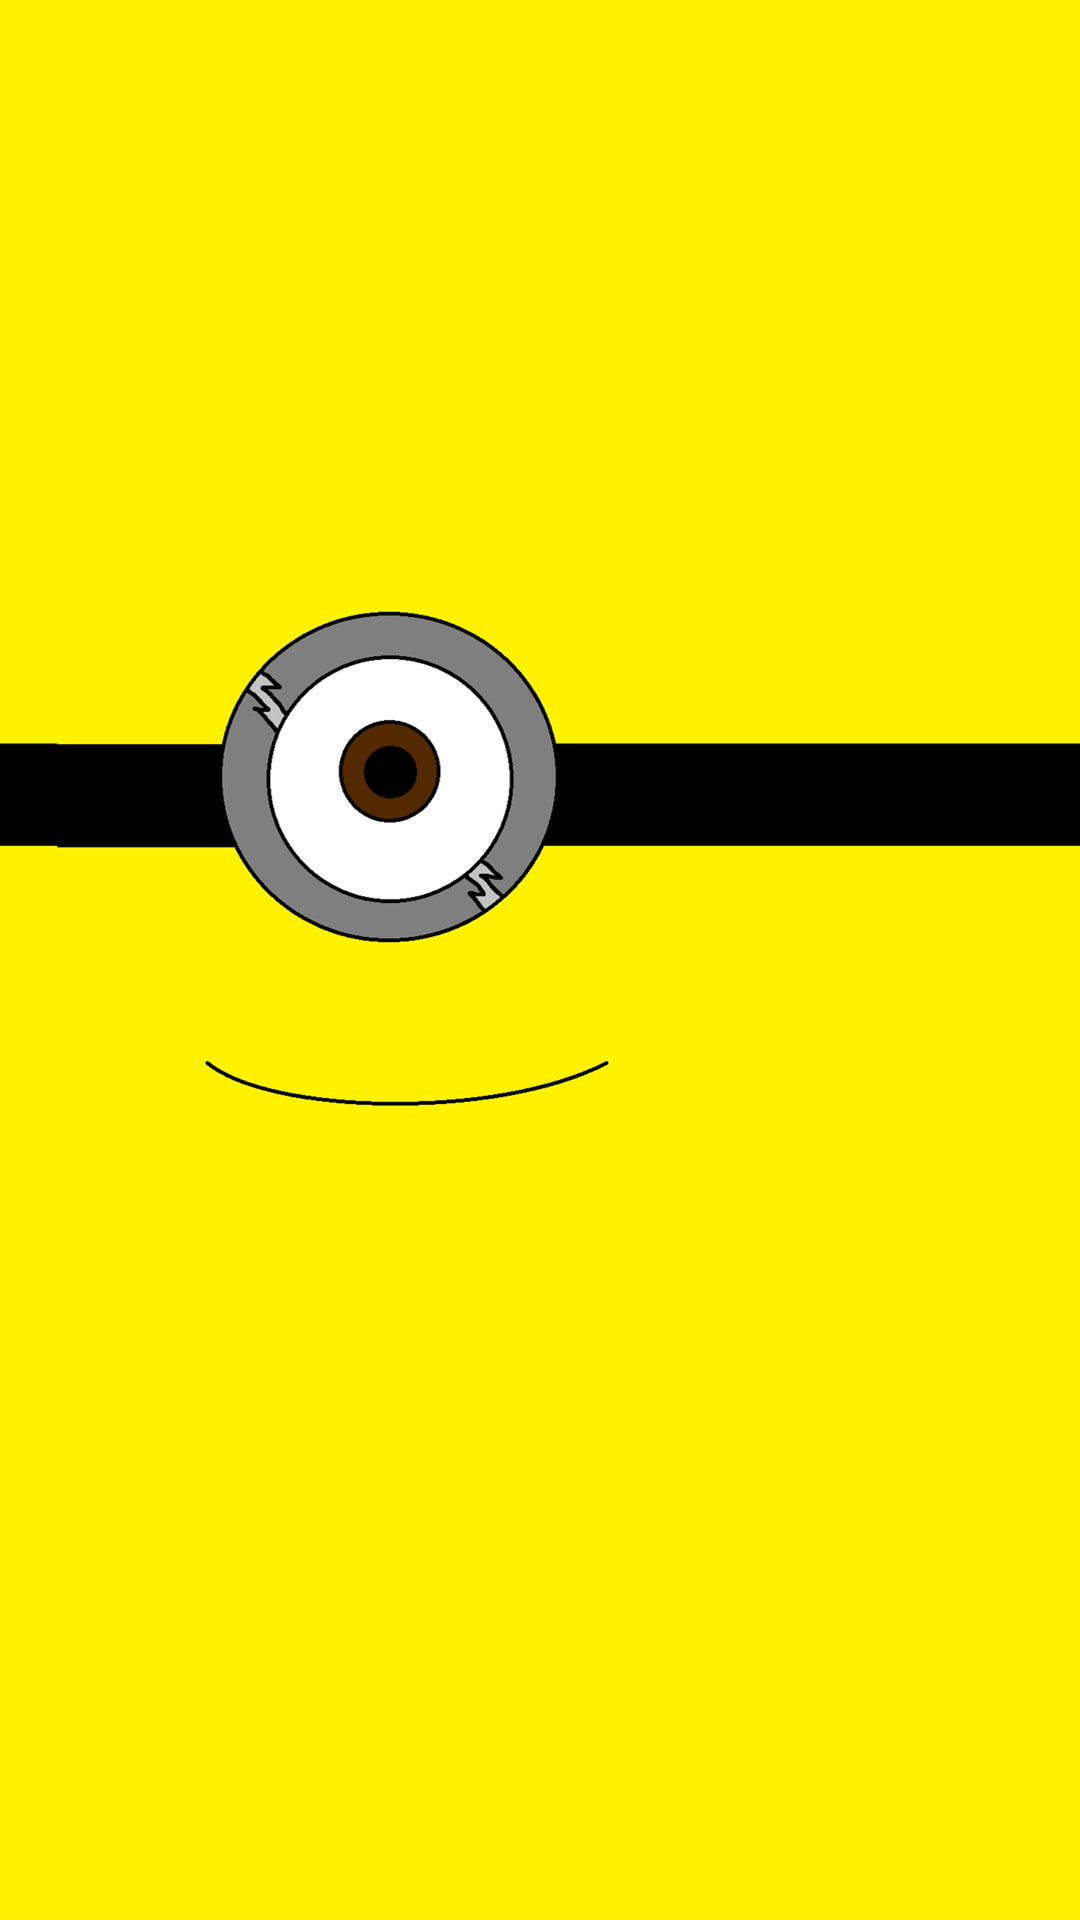 1080x1920 2014 Halloween all yellow one big eye minion iphone 6 plus wallpaper -  Despicable Me iphone